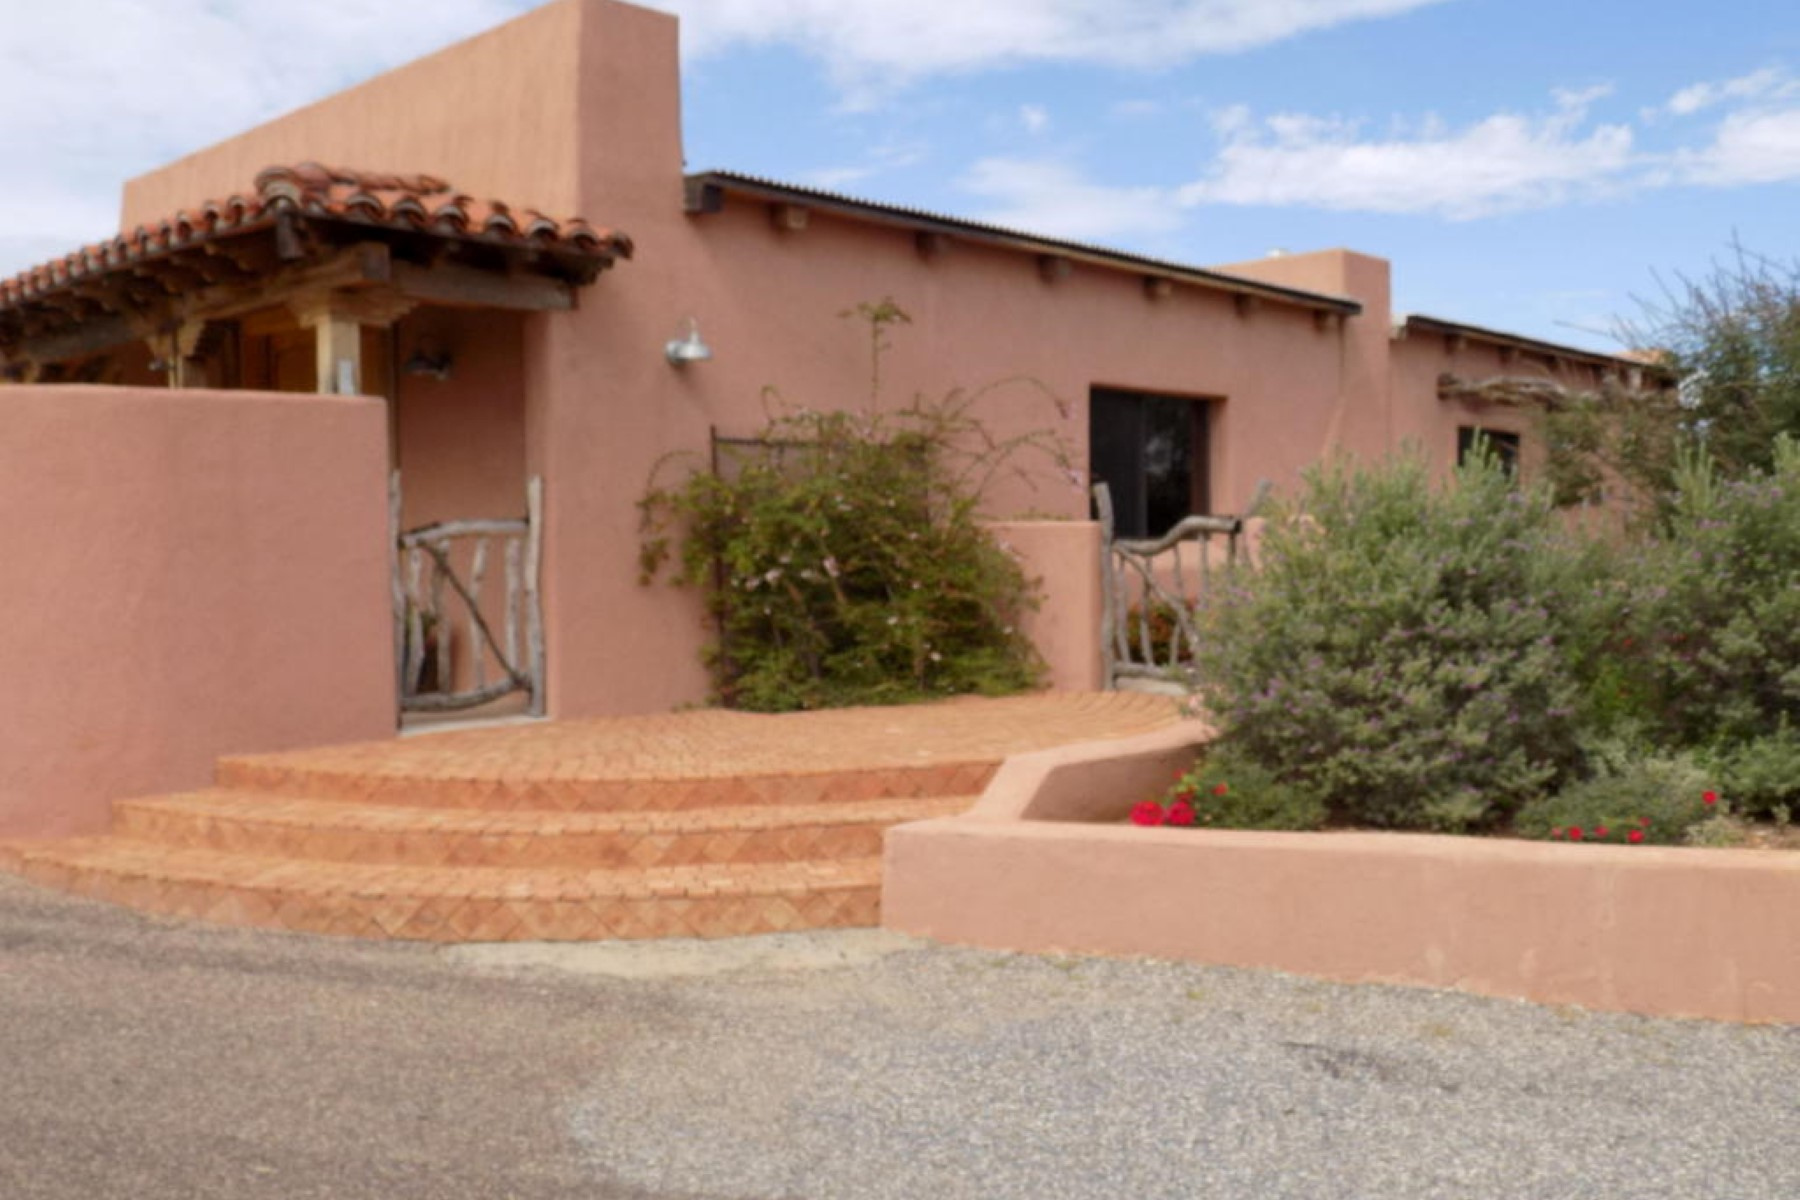 Single Family Home for Sale at Well-constructed, custom-built home in the Sonoita Meadows subdivision 12 Black Oak Drive Sonoita, Arizona, 85637 United States